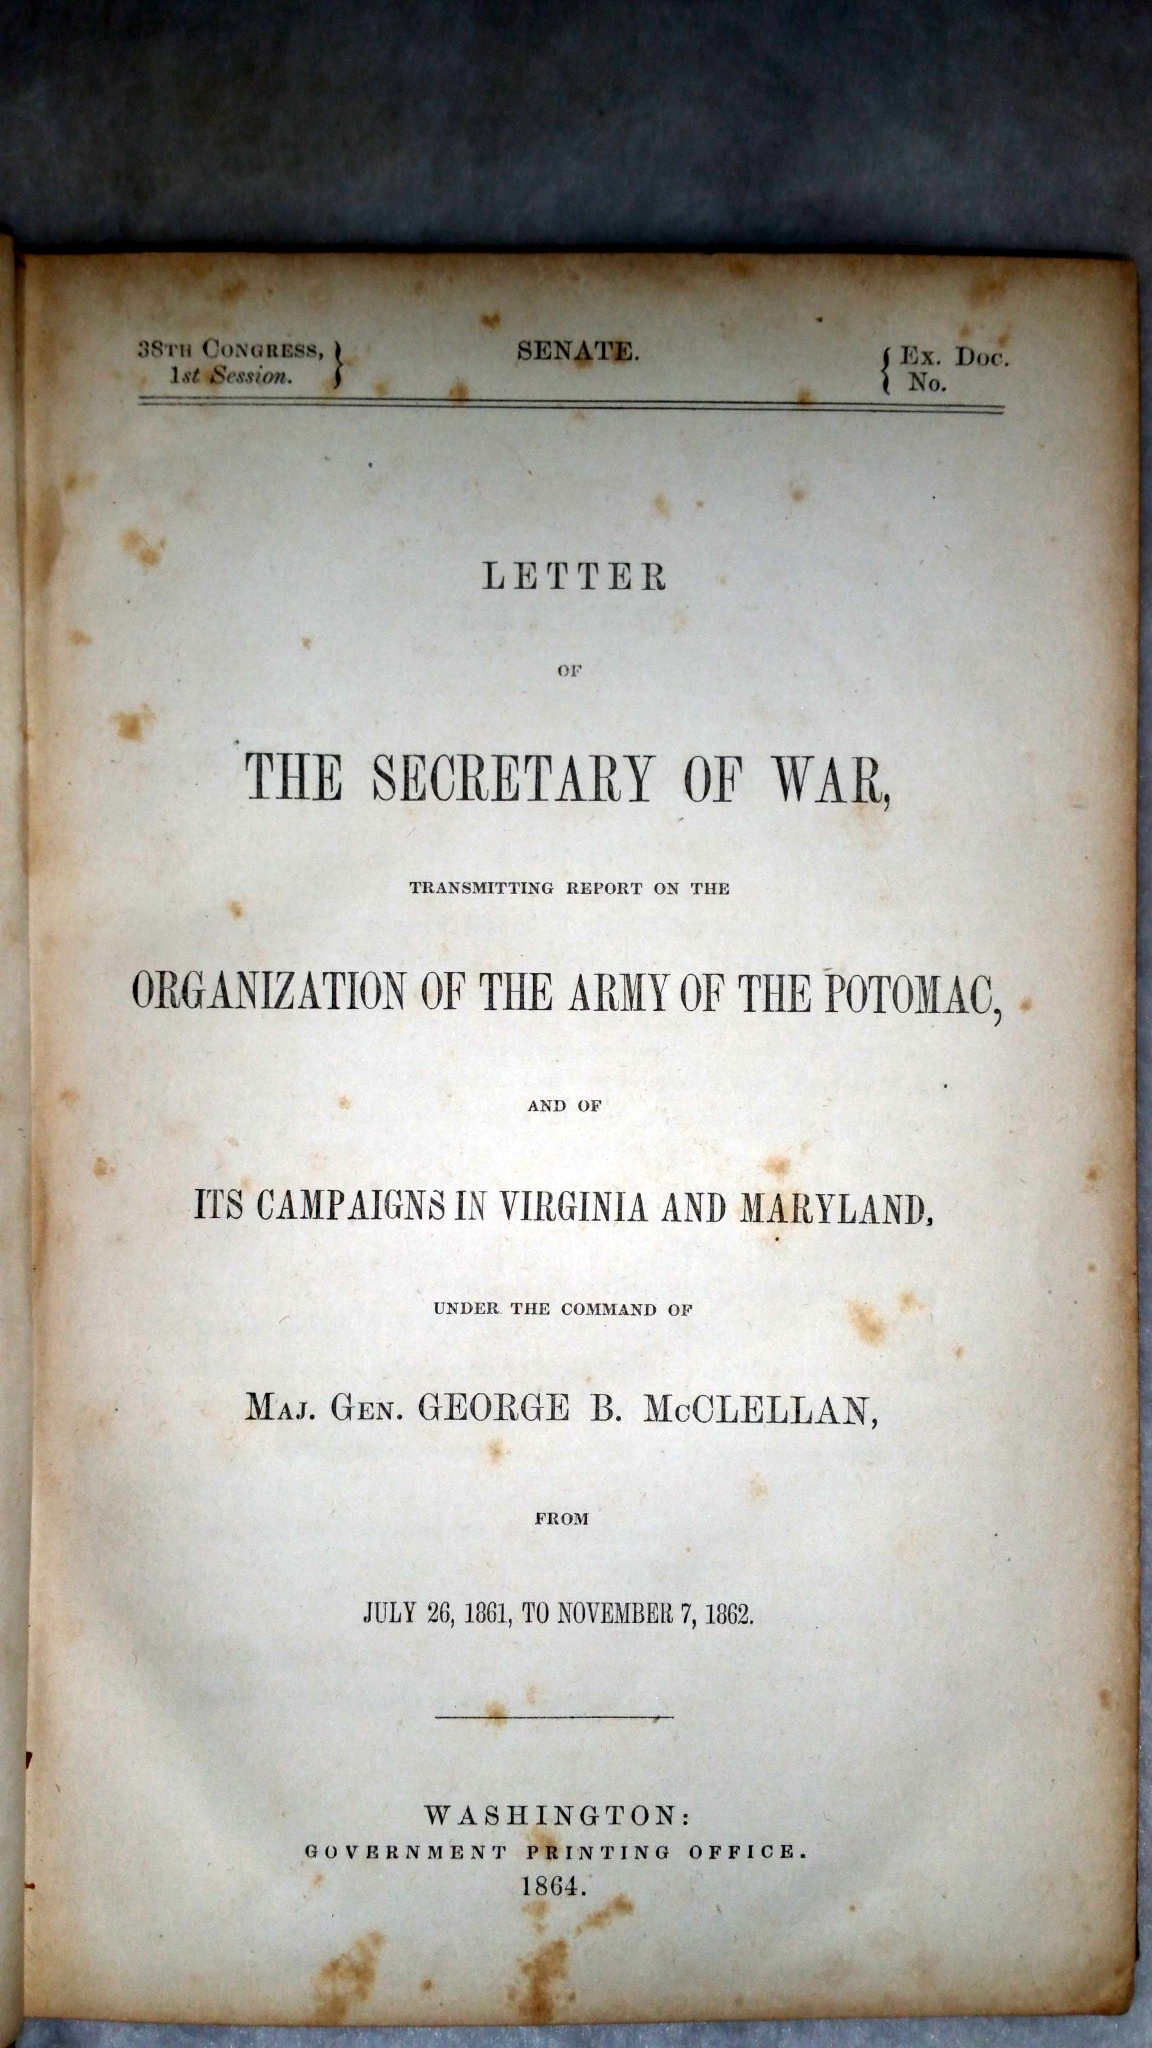 Image for Letter of the Secretary of War Transmitting Report on the Organization of the Army of the Potomac, and of Its Campaigns in Virginia and Maryland, Under the Command of Maj. Gen. George B. McClellan, from July 26, 1861, to November 7, 1862